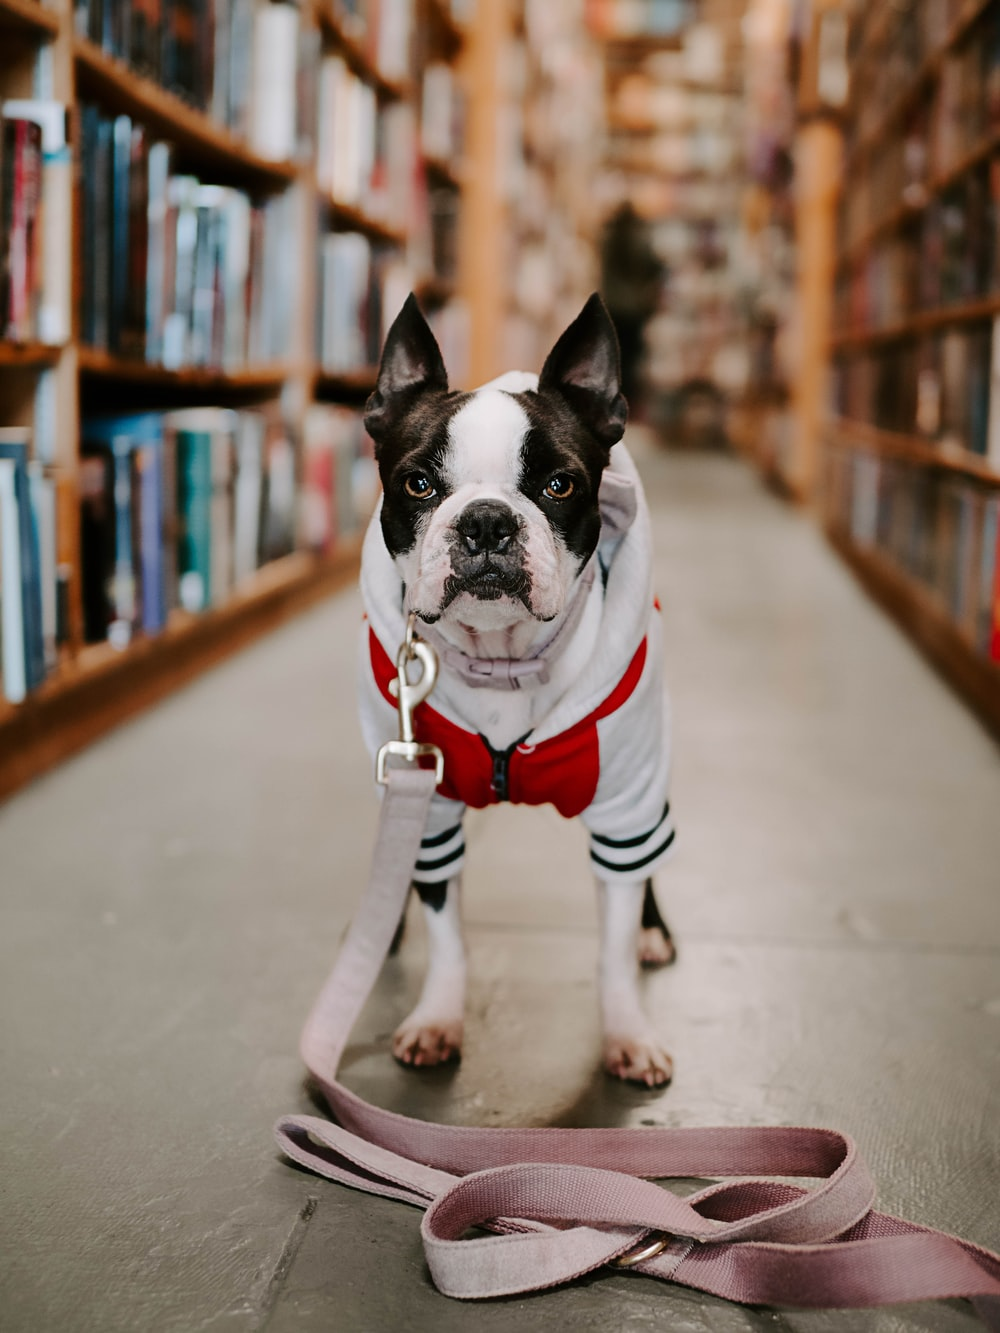 adult white and black Boston terrier standing in front of book shelf in library